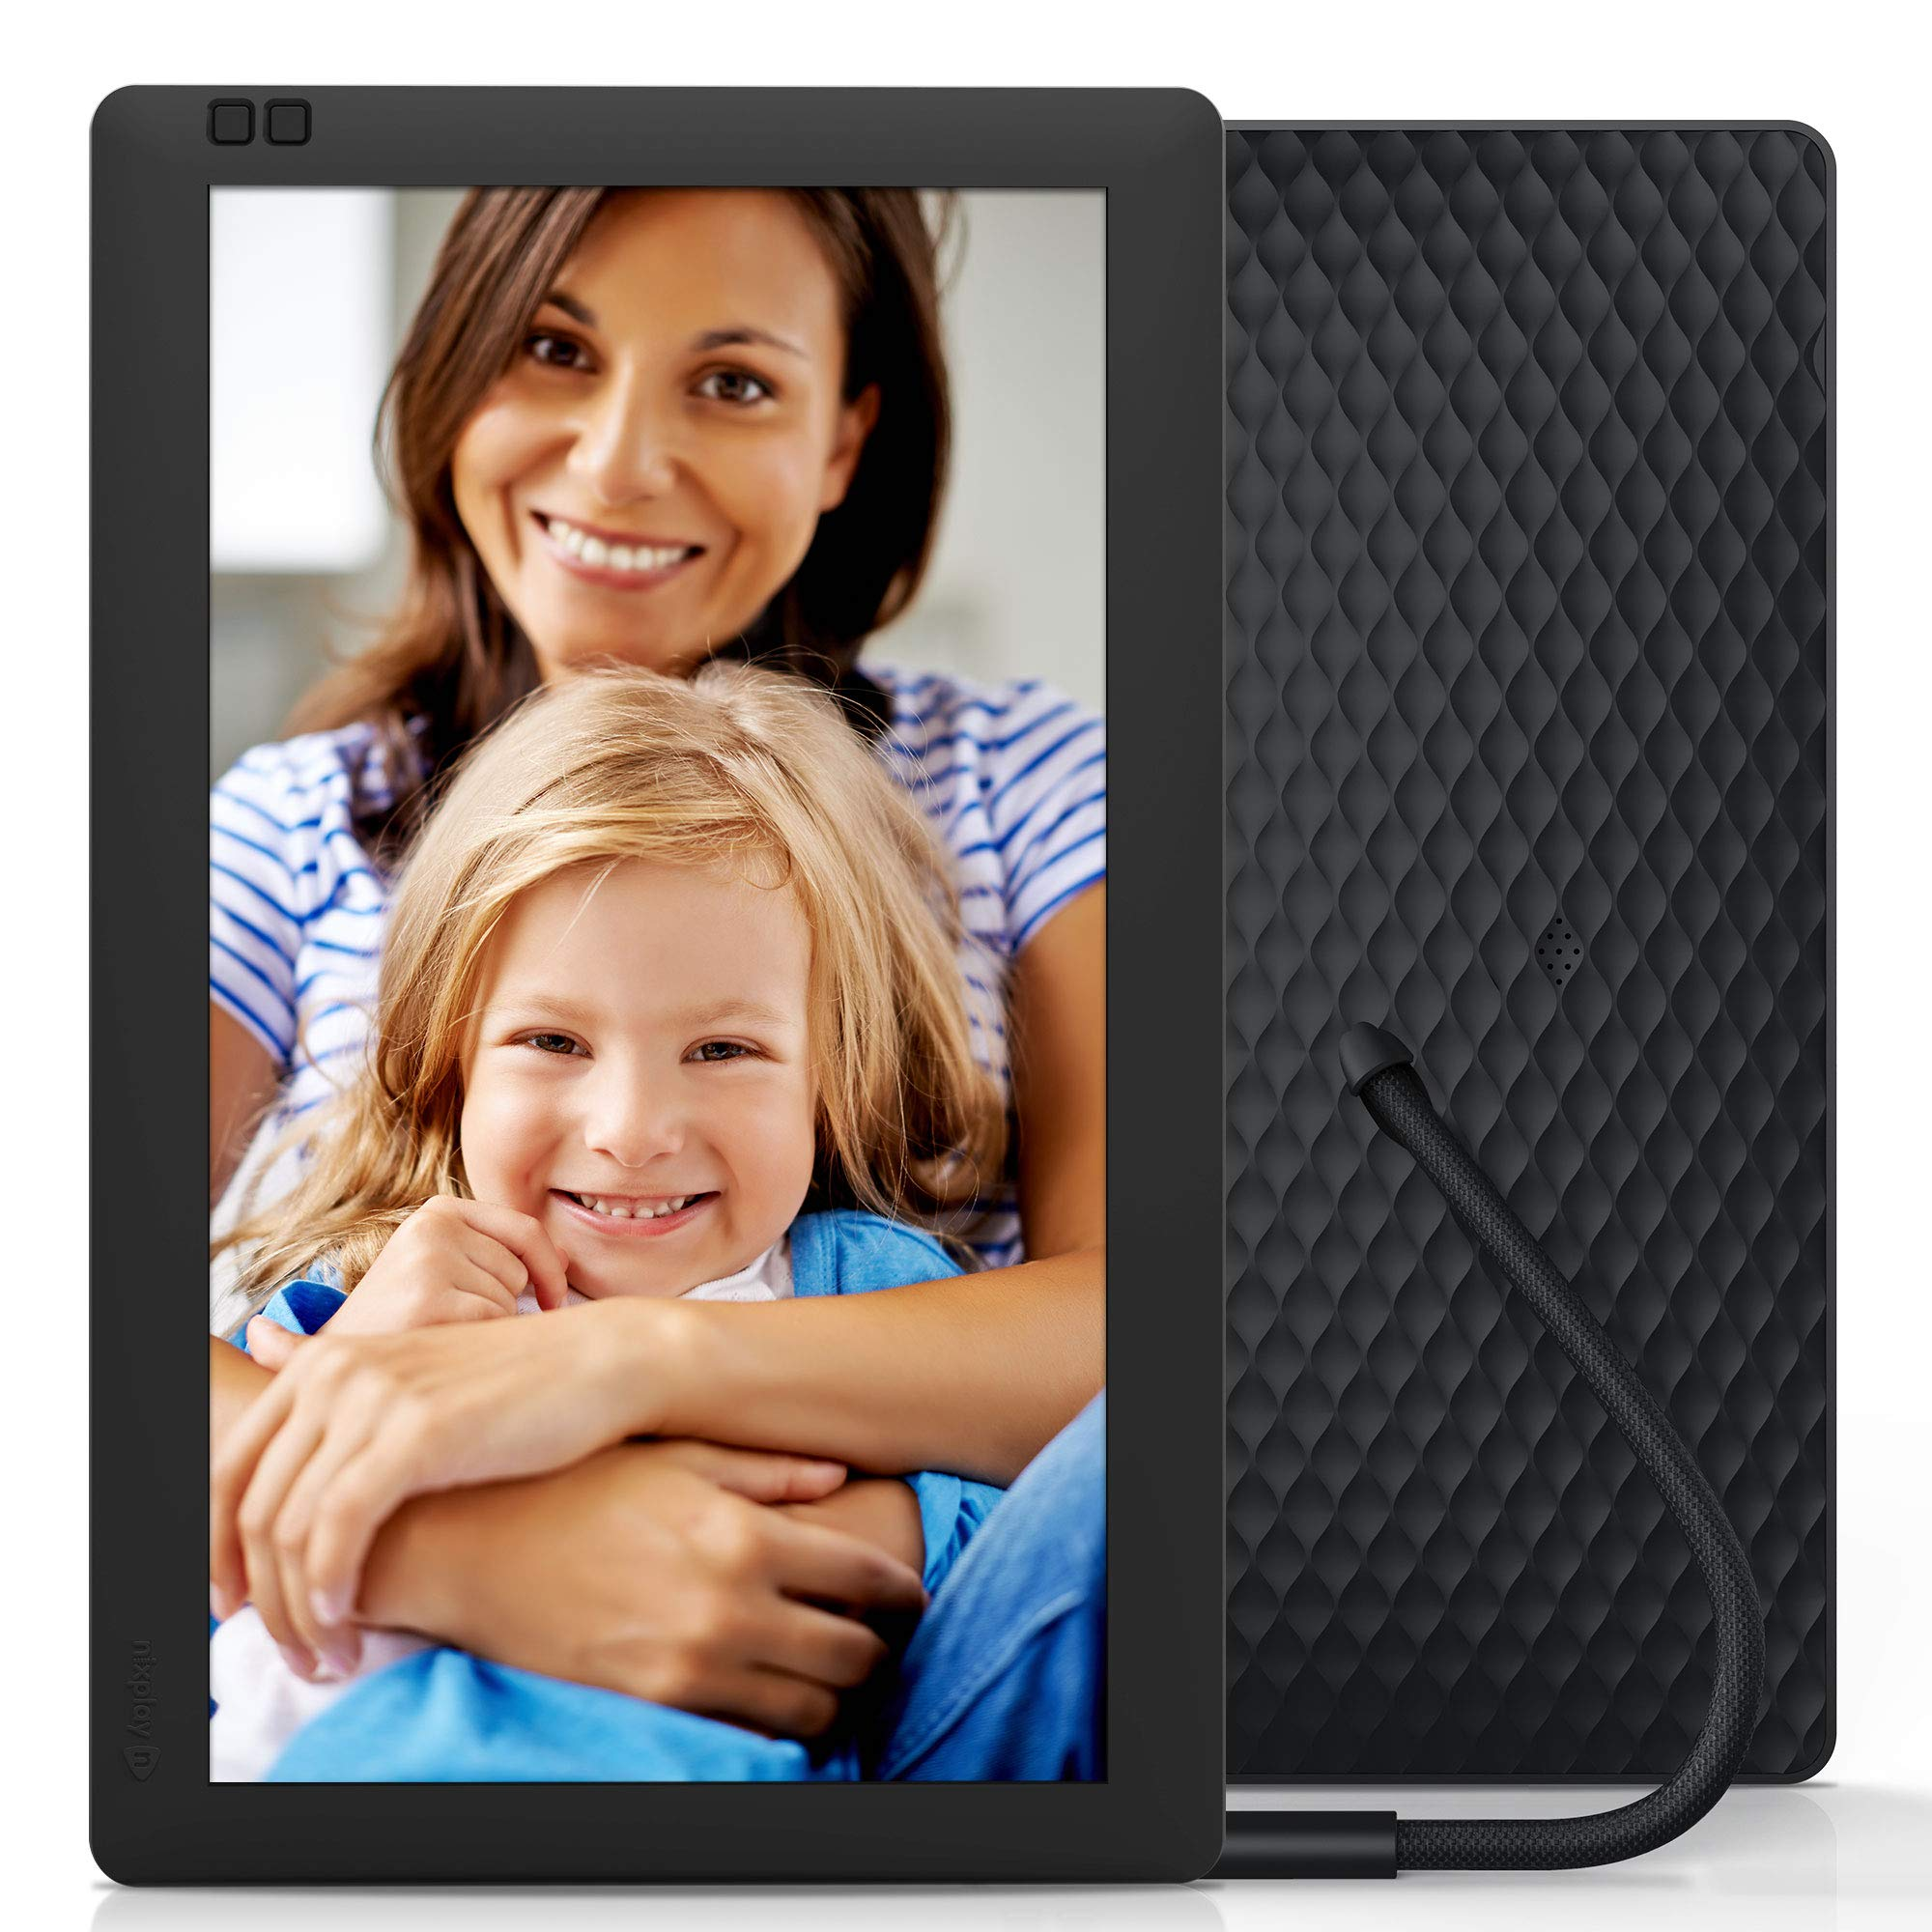 Nixplay Seed 13 Inch Widescreen Digital Wi-Fi Photo Frame W13B Black - Digital Picture Frame with IPS Display and 10GB Online Storage, Display and Share Photos with Friends via Nixplay Mobile App by nixplay